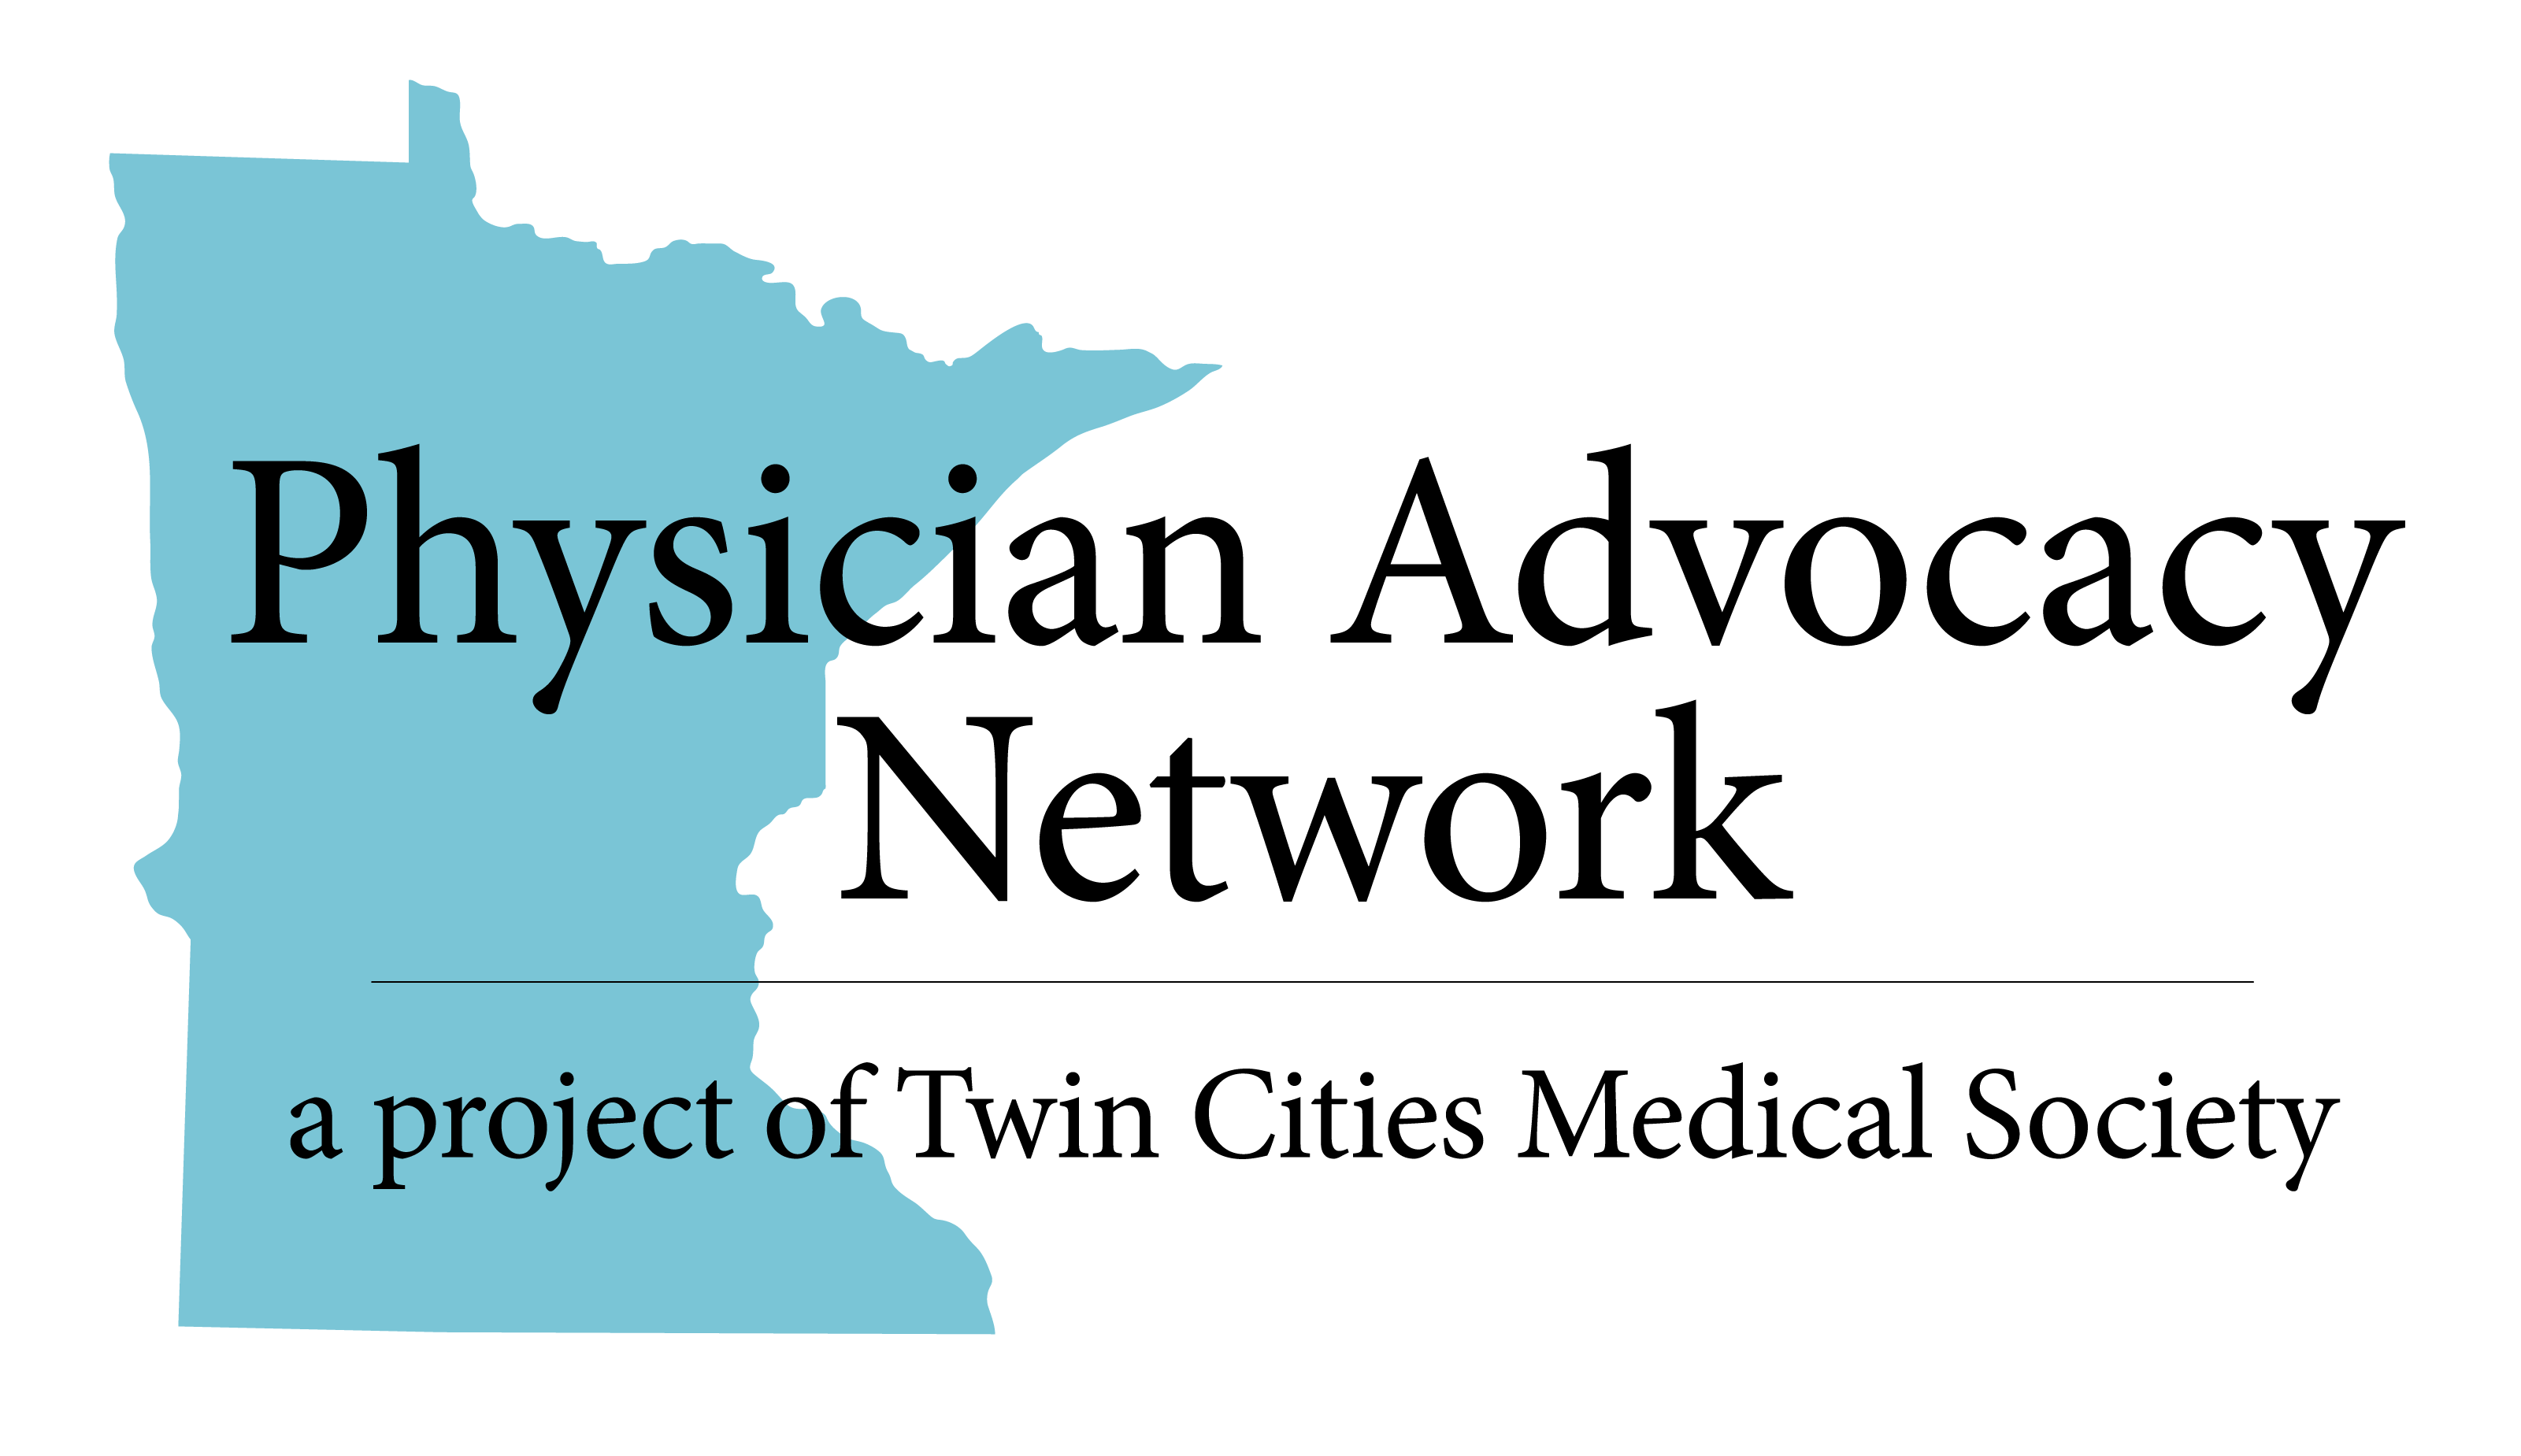 Physician Advocacy Network of Twin Cities Medical Society